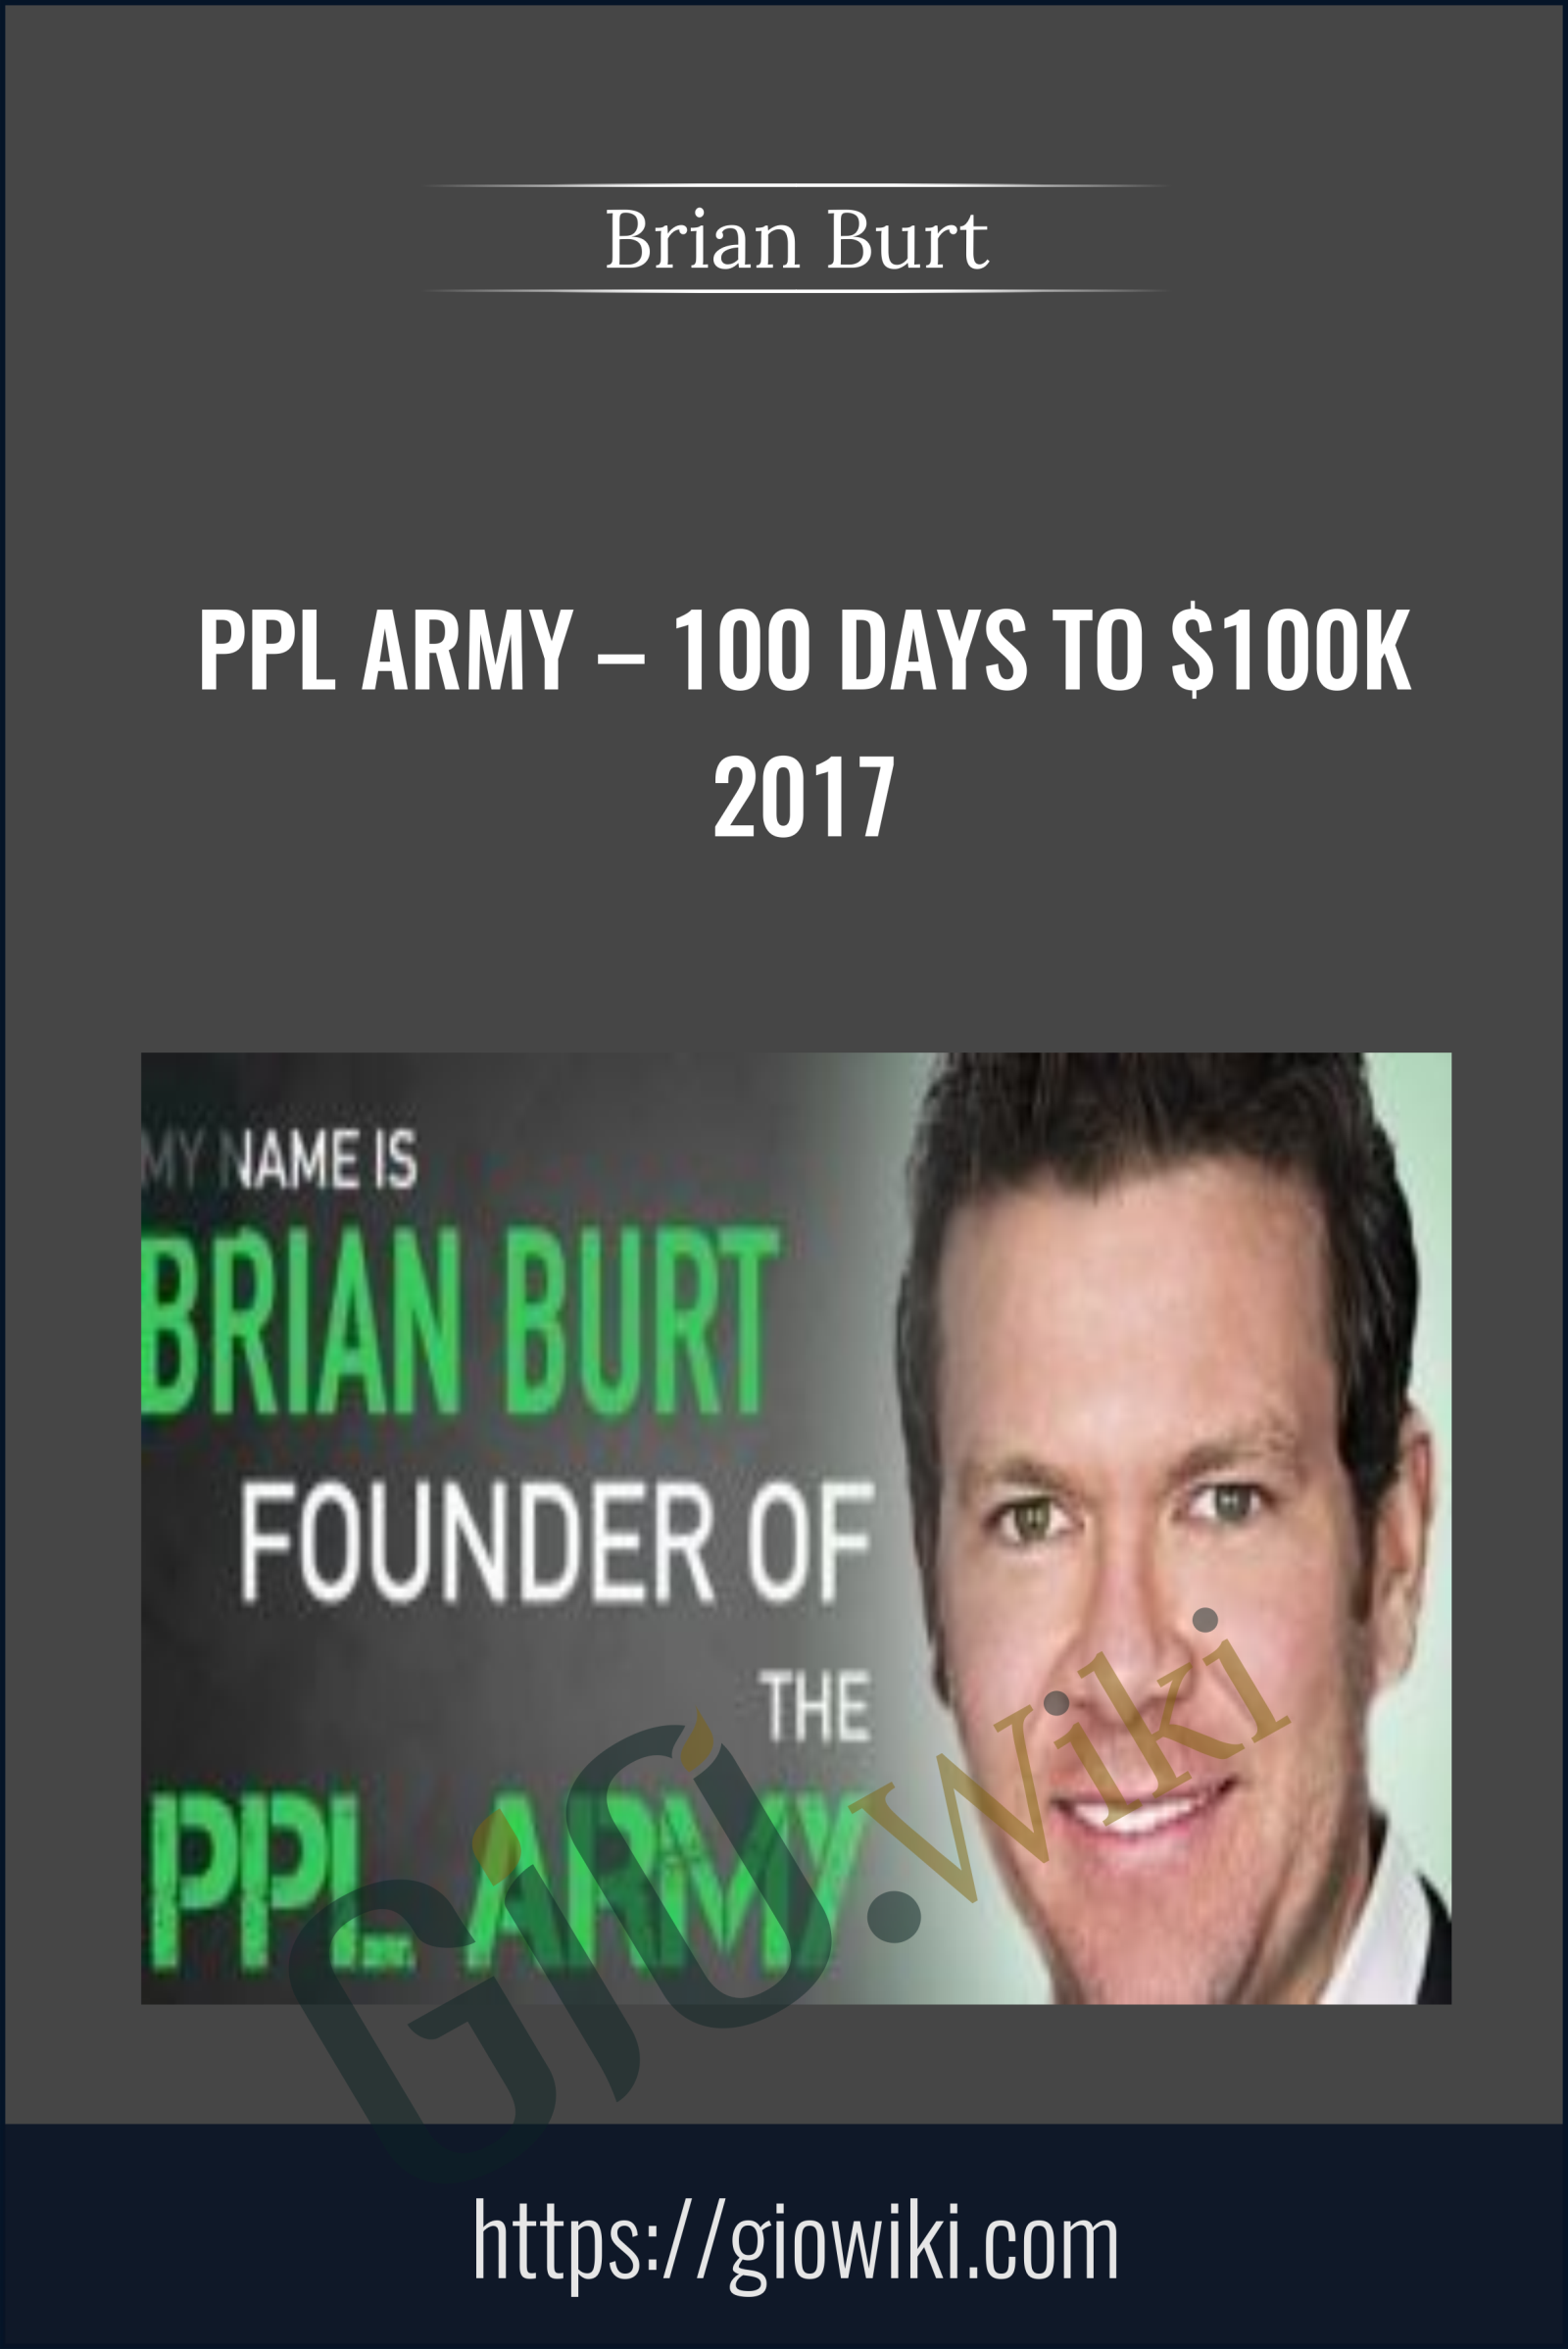 PPL Army – 100 Days To $100k 2017 - Brian Burt